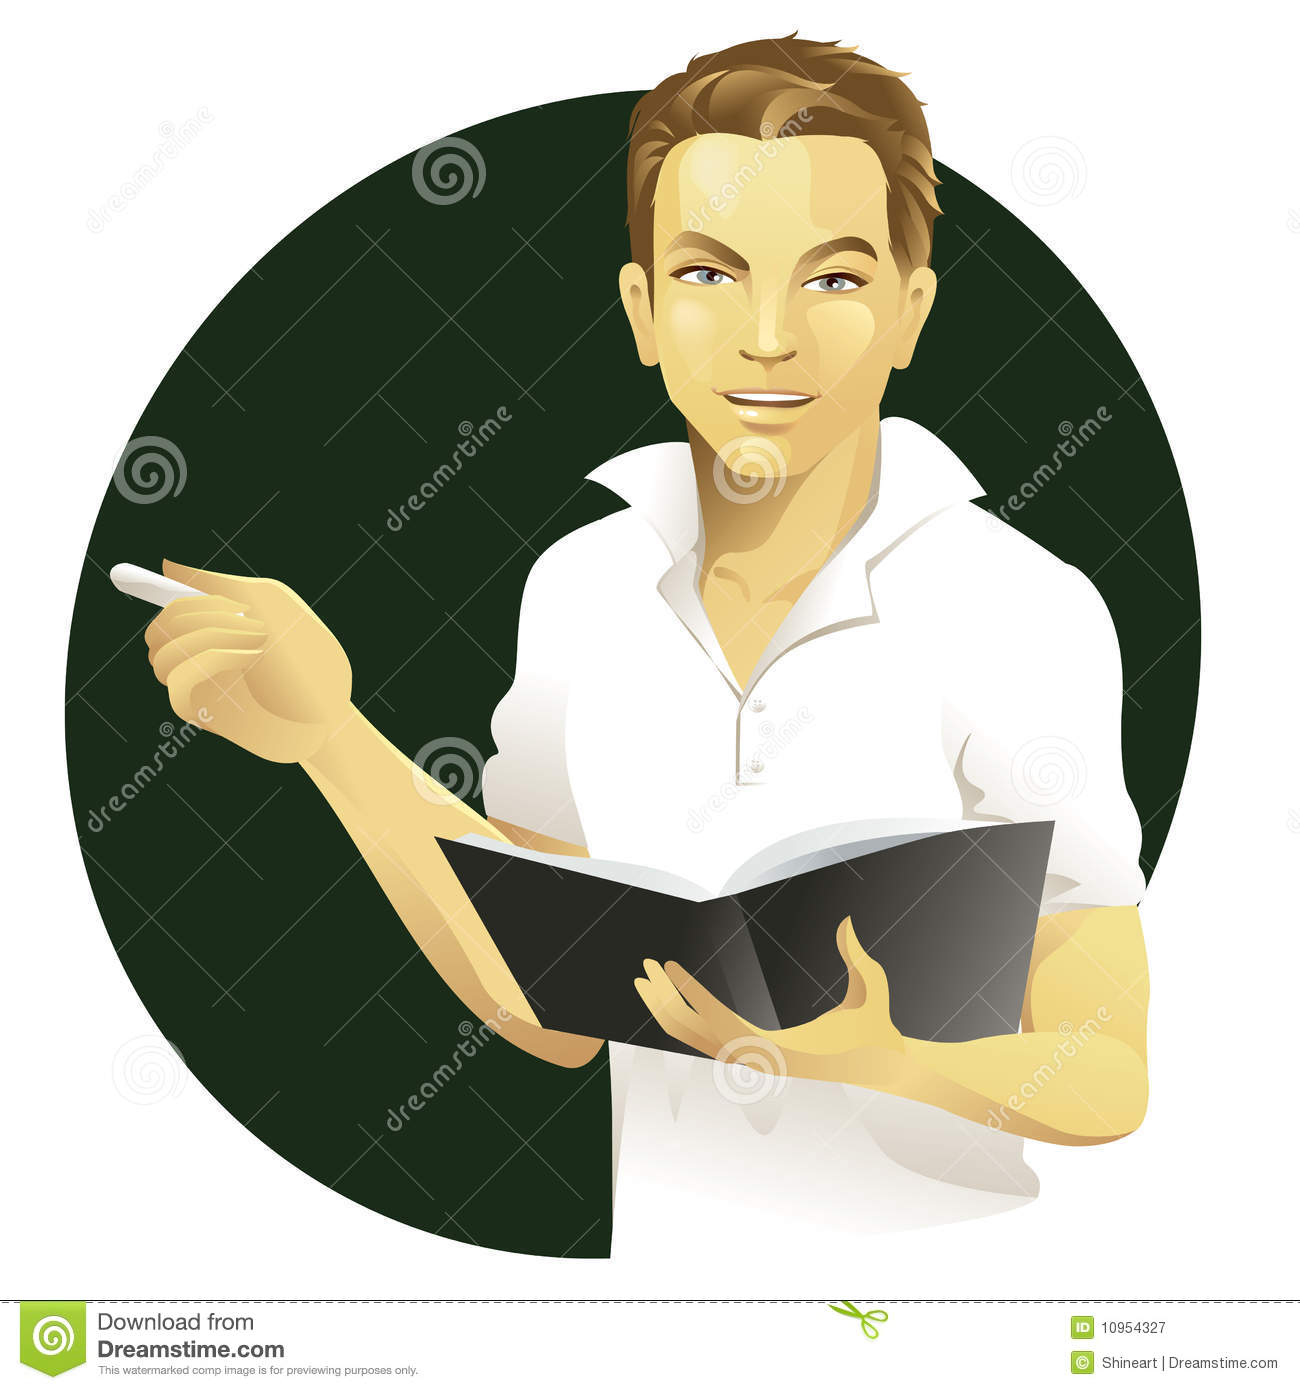 male teacher clipart - photo #8